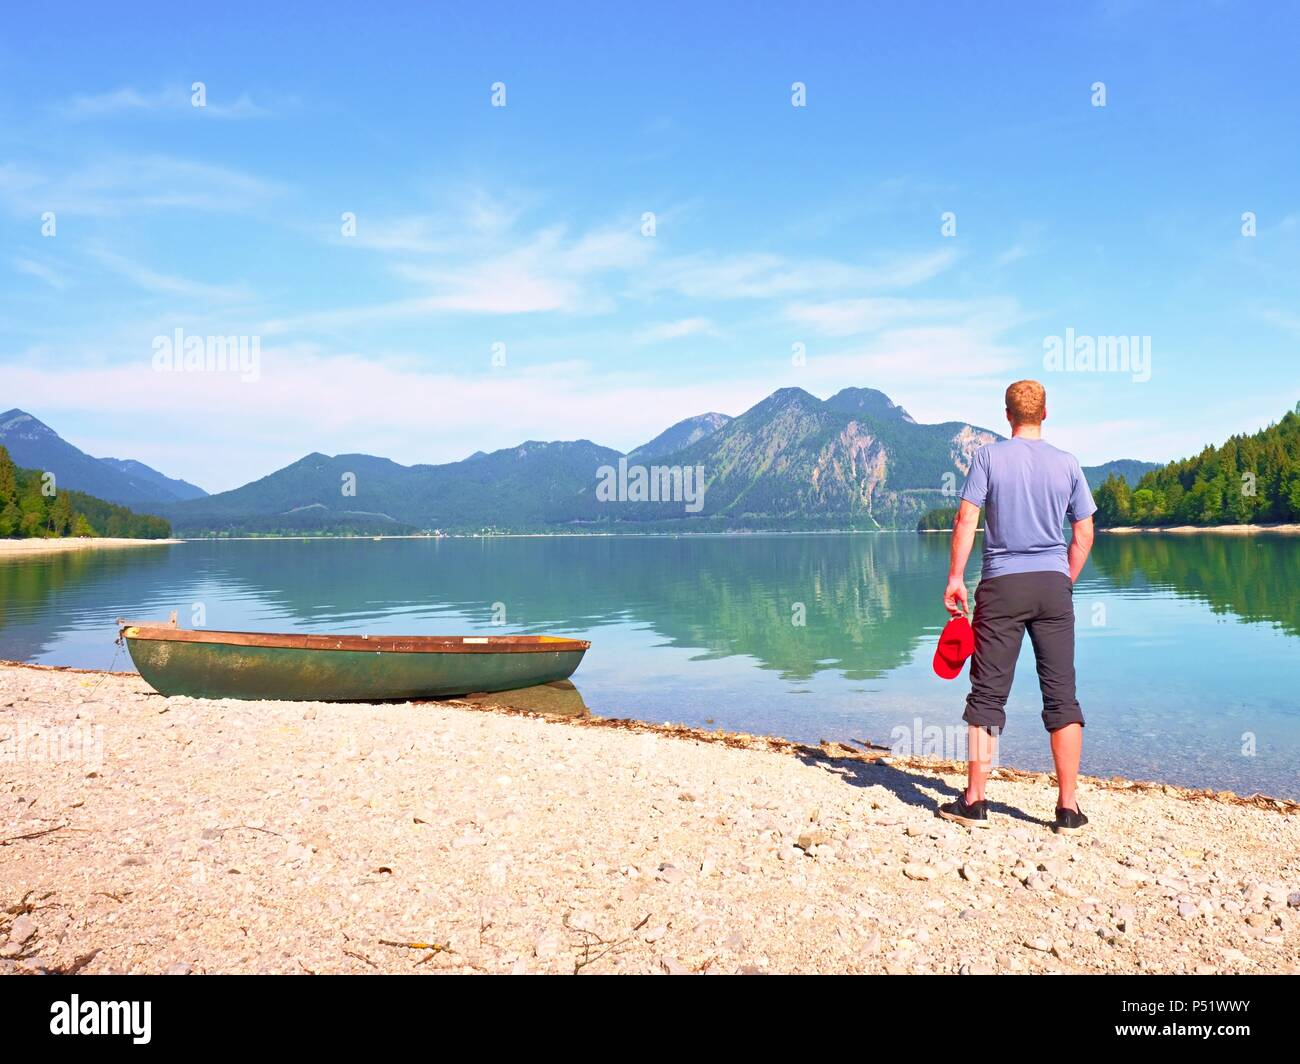 Adult man in blue shirt at old fishing paddle boat at mountains lake coast. Sunny spring day. - Stock Image